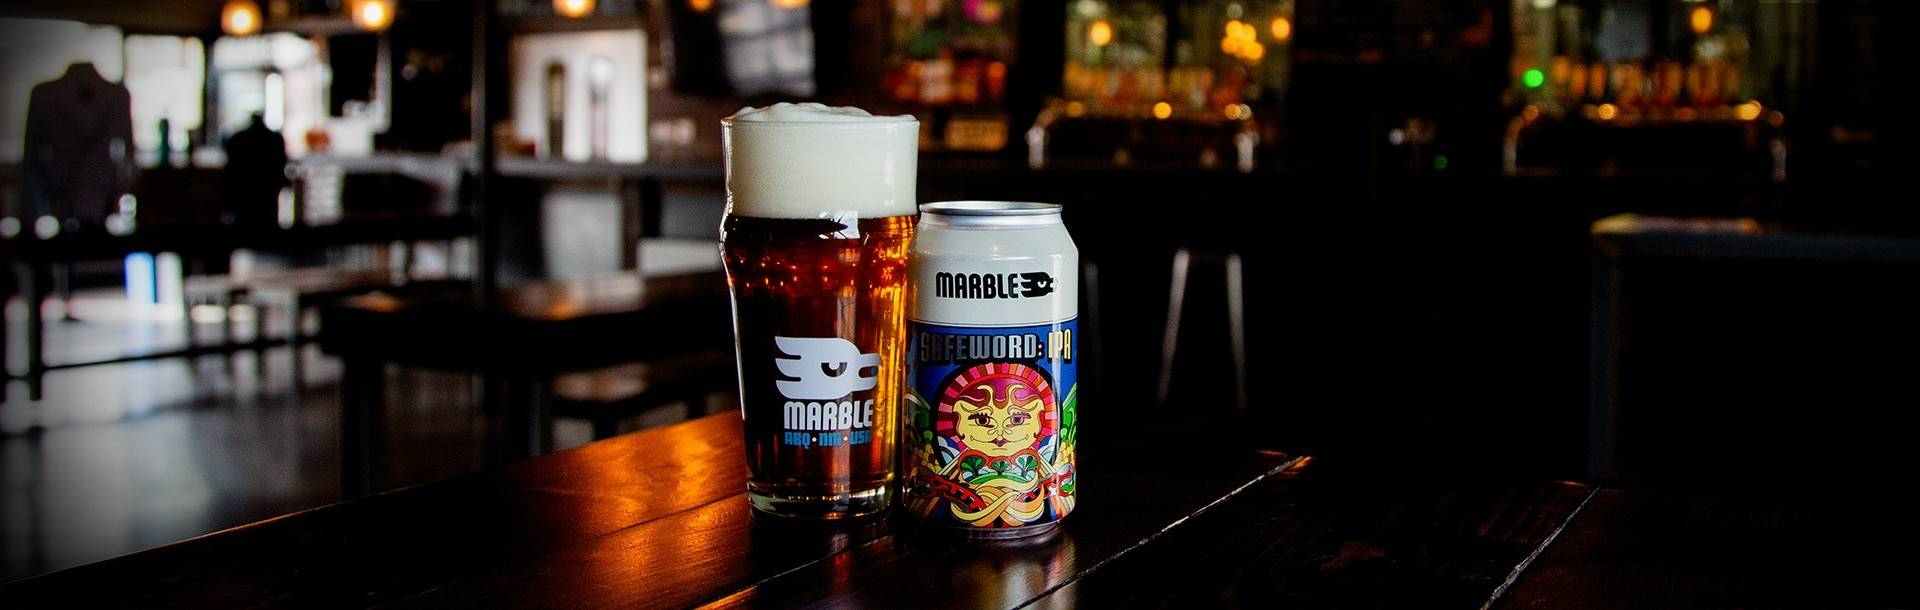 Marble Brewery Expands Distribution To Colorado photo